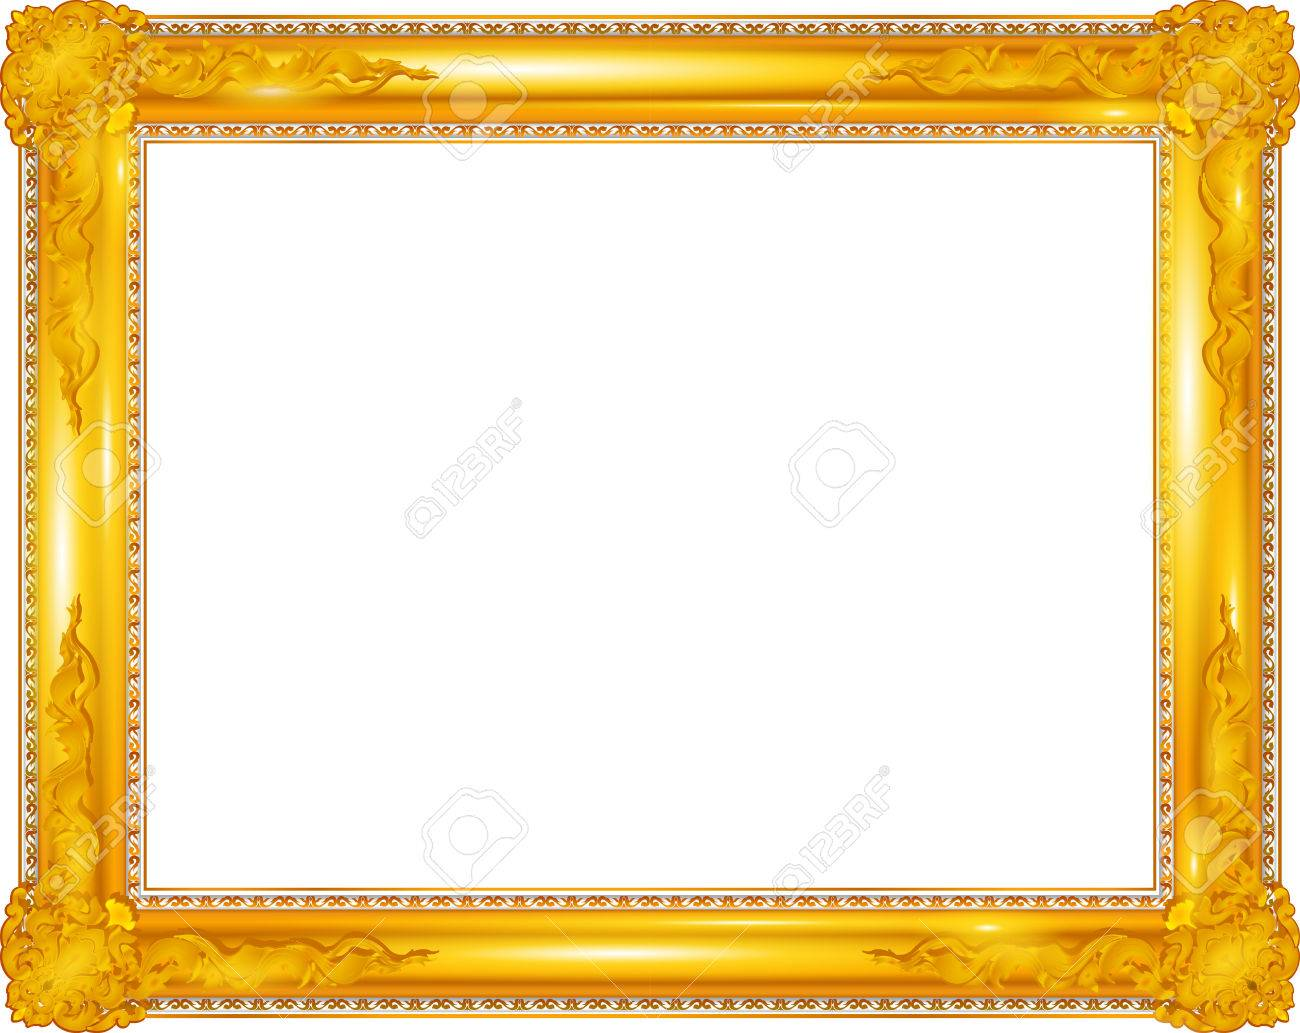 Gold Rahmen Gold Photo Frame With Corner Line Floral For Picture, Design.. Royalty Free Cliparts, Vectors, And Stock Illustration. Image 64993224.